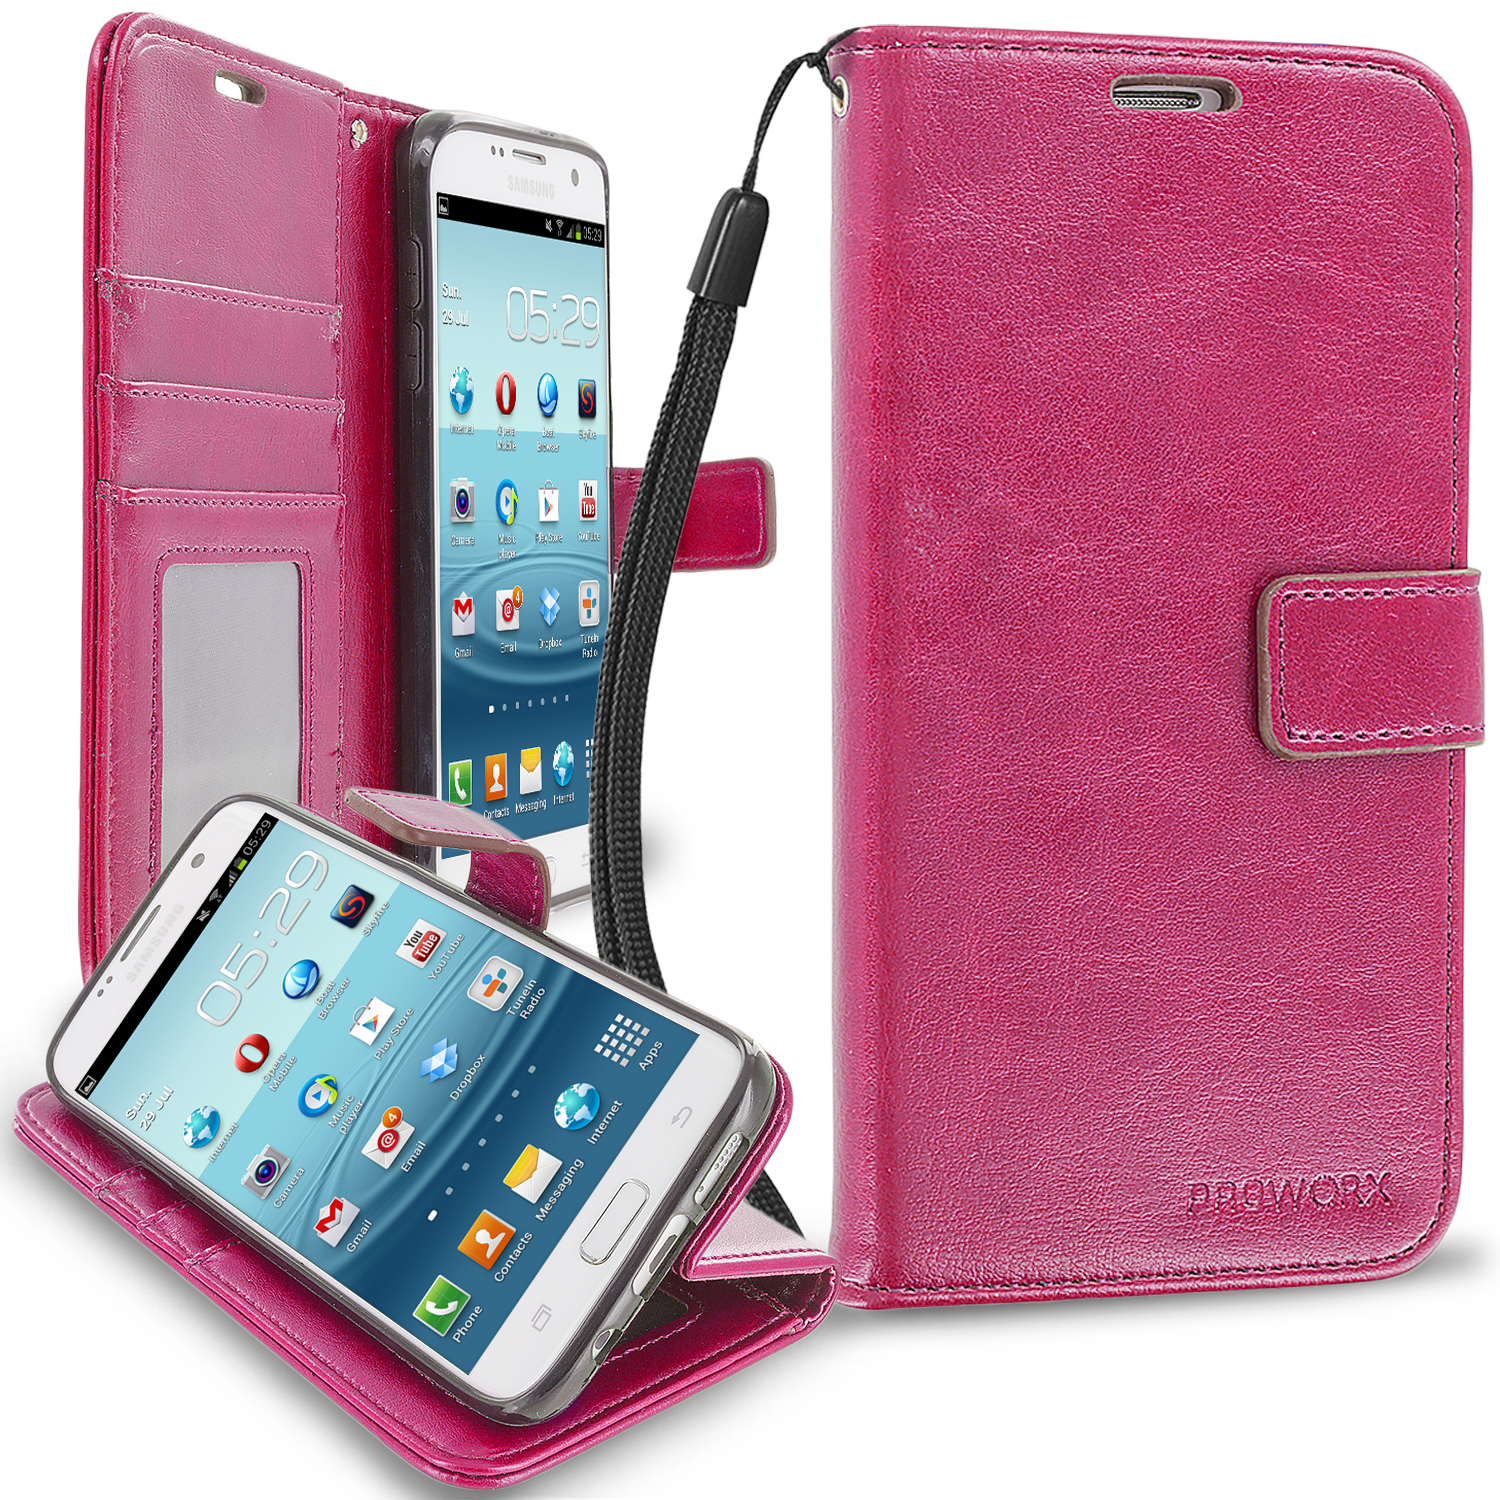 Samsung Galaxy S7 Edge Hot Pink ProWorx Wallet Case Luxury PU Leather Case Cover With Card Slots & Stand